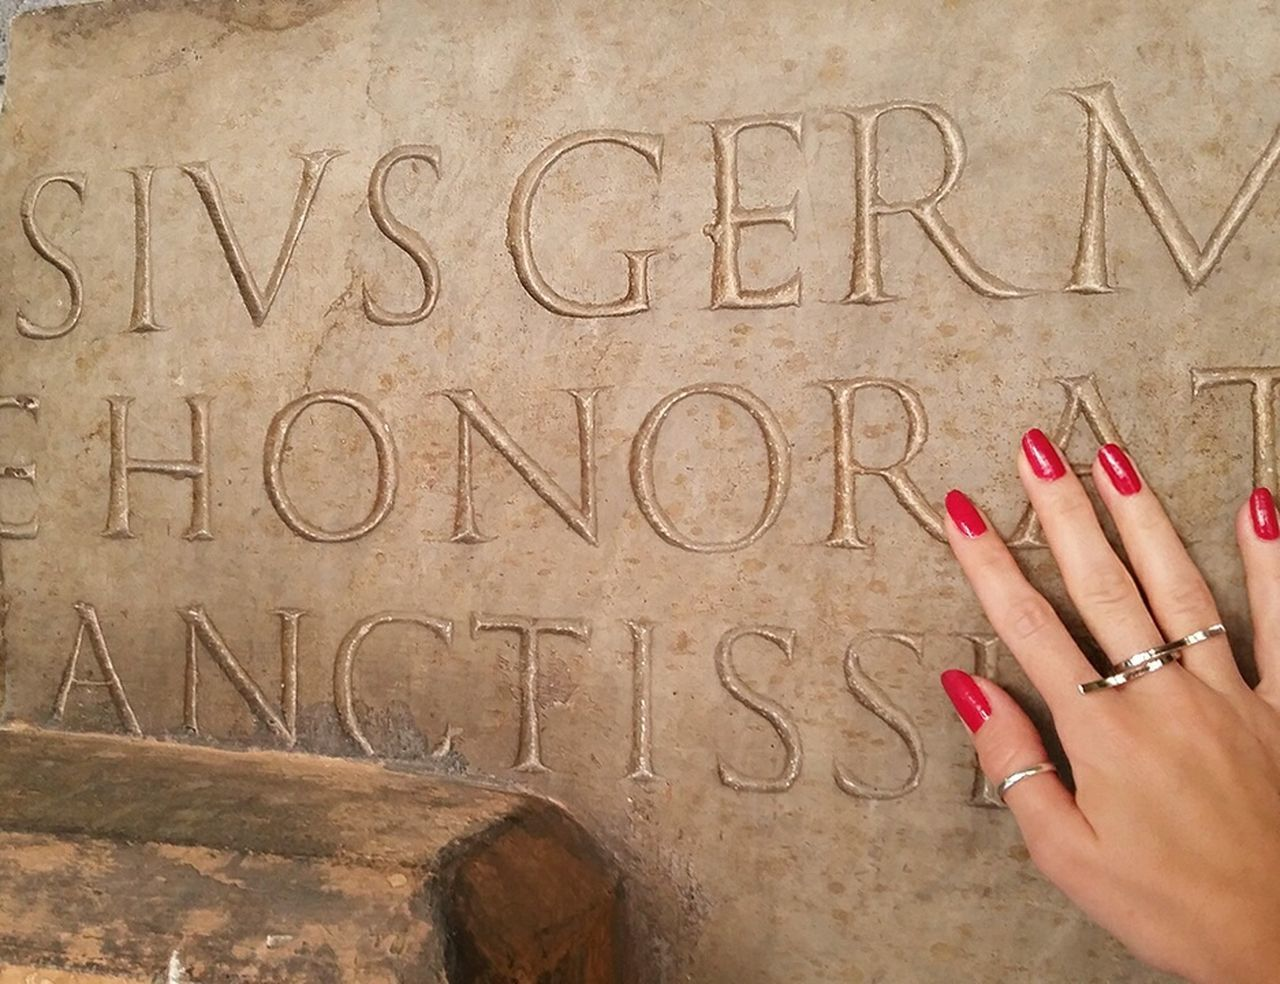 Honour. Writing Ancient Rome Ancient Hand Hands Touching Hand With Red Nails Red Nails Roman Roman Writing Wall Honor Honour Beautiful Hand